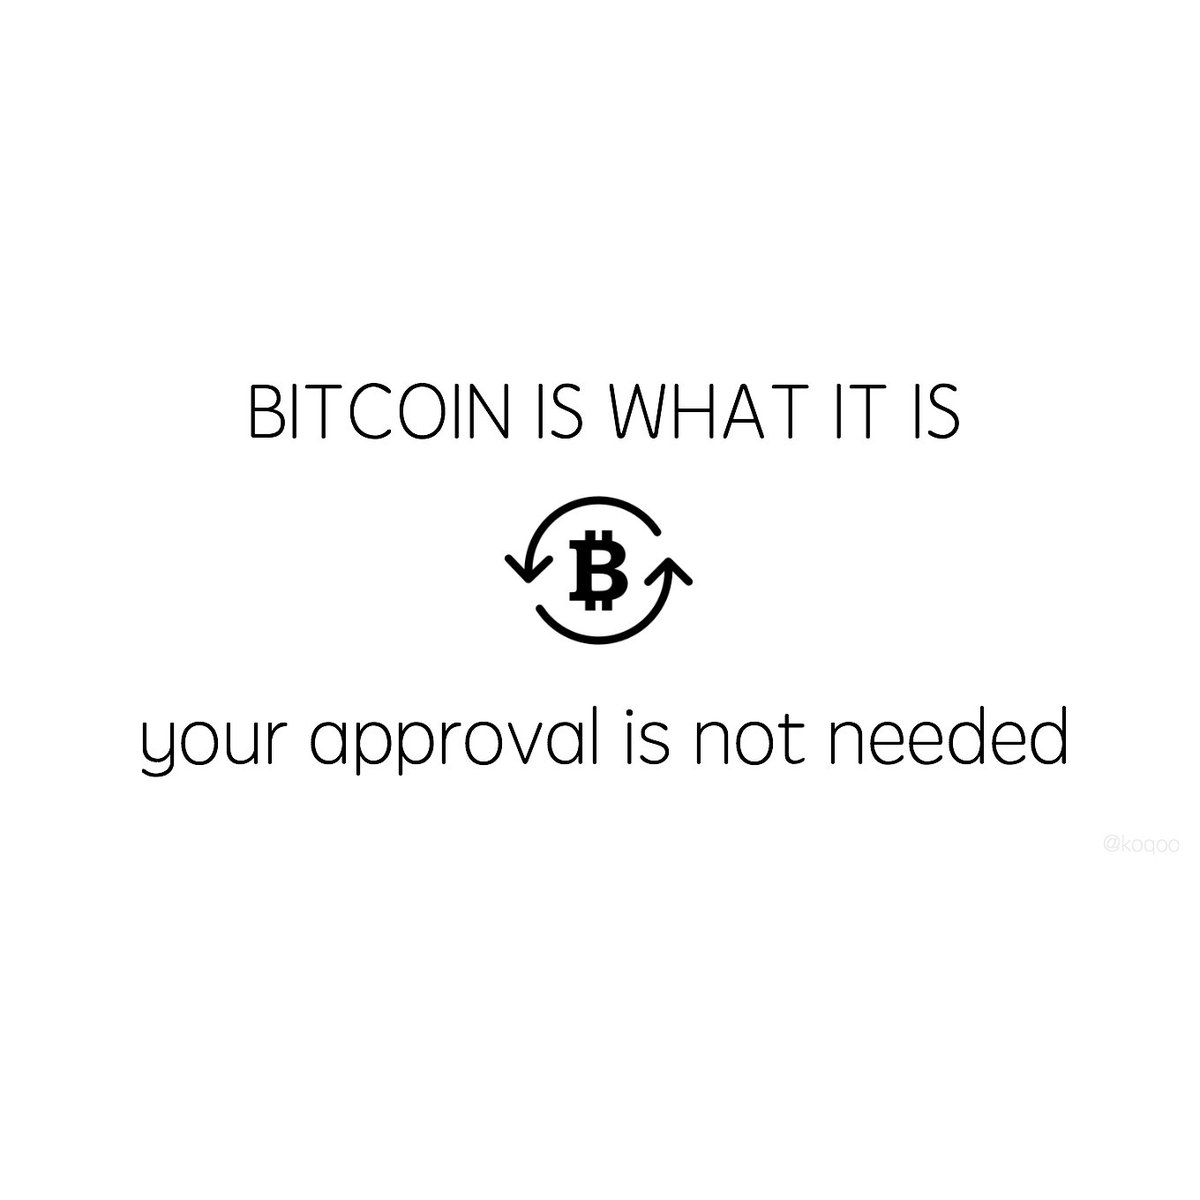 Just because you don't understand how #Bitcoin works, it doesn't mean that the explanation does not exist. #fintech https://t.co/9xjOtUcVmg